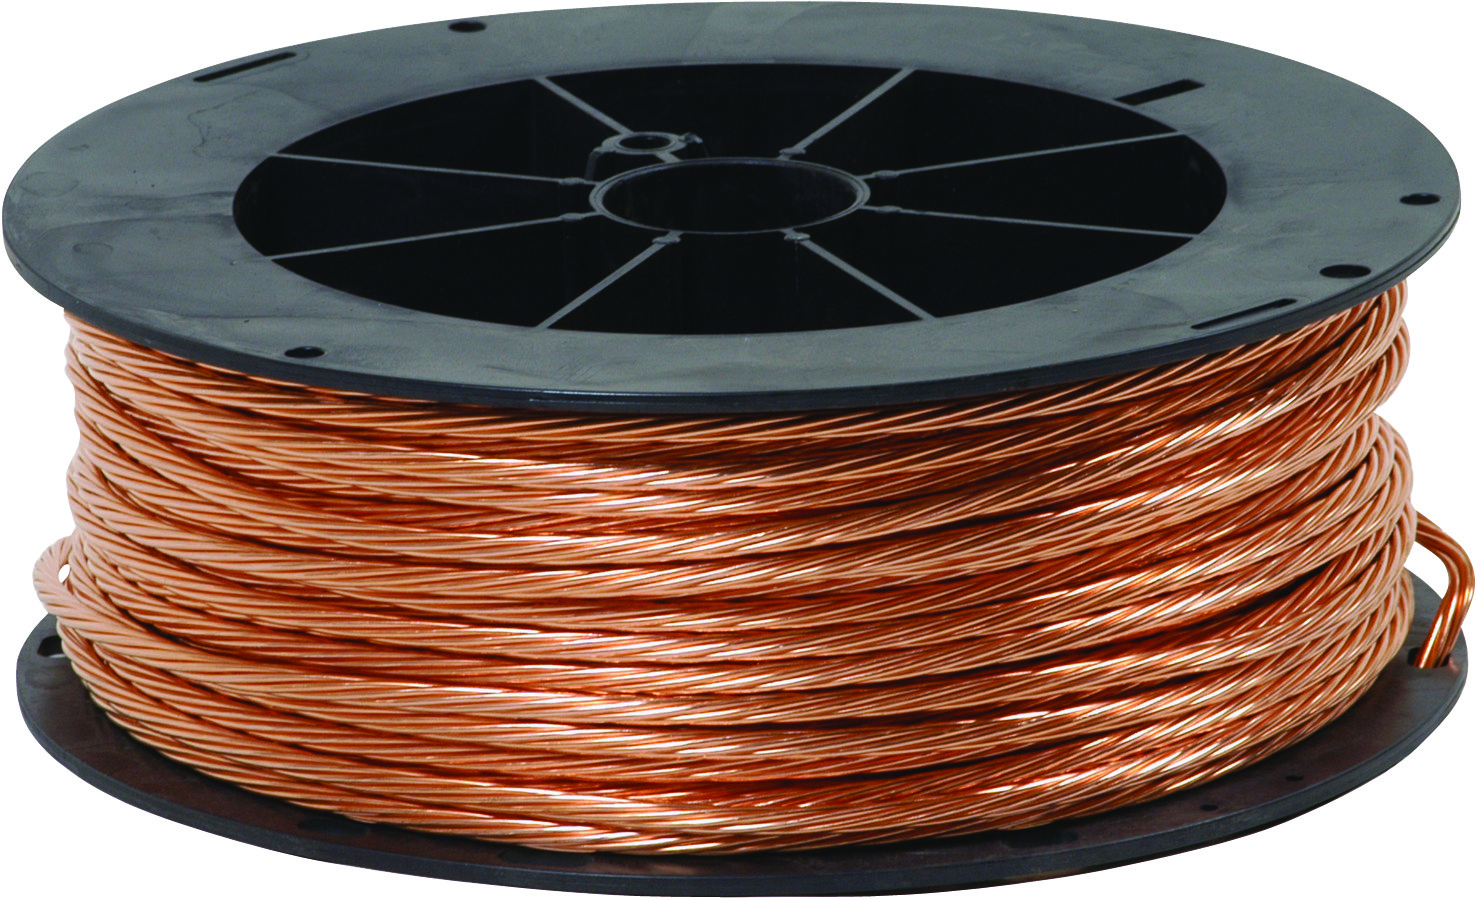 Southwire 4STRDX200BARE 198 Foot #4 Gauge Stranded Bare Copper Wire ...